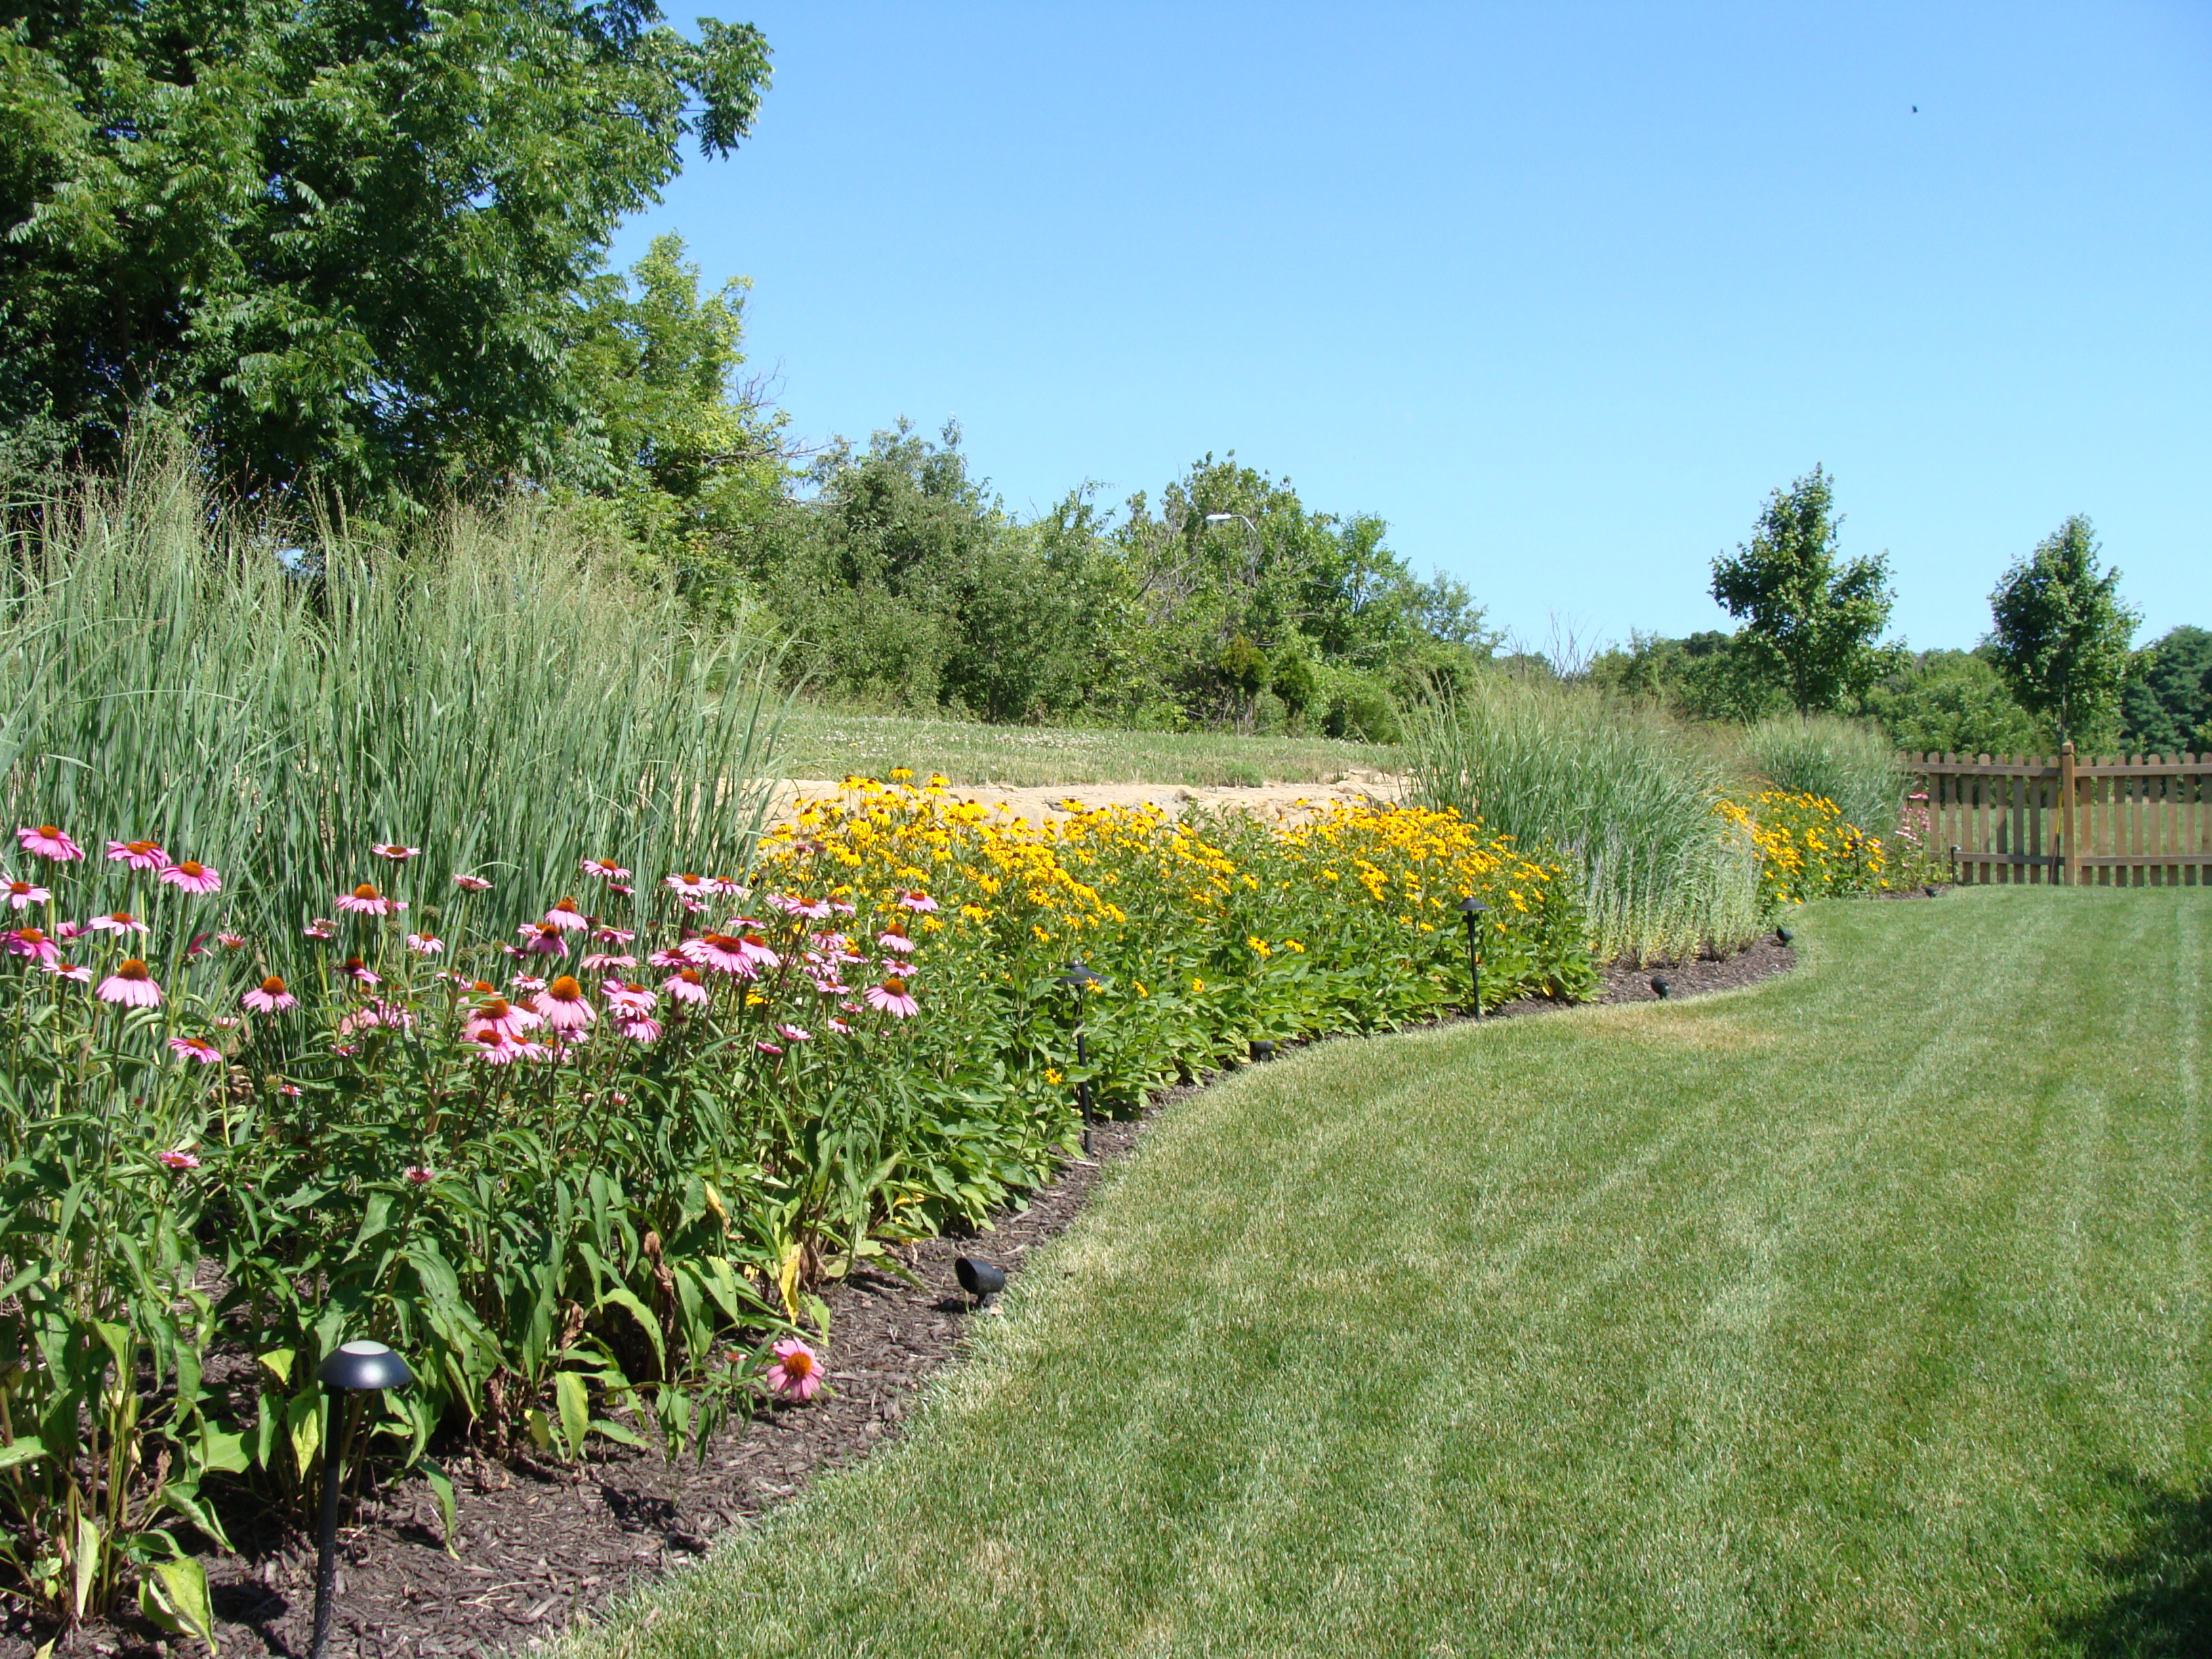 A sunny, open area with cover nearby is an ideal setting for a butterfly garden.